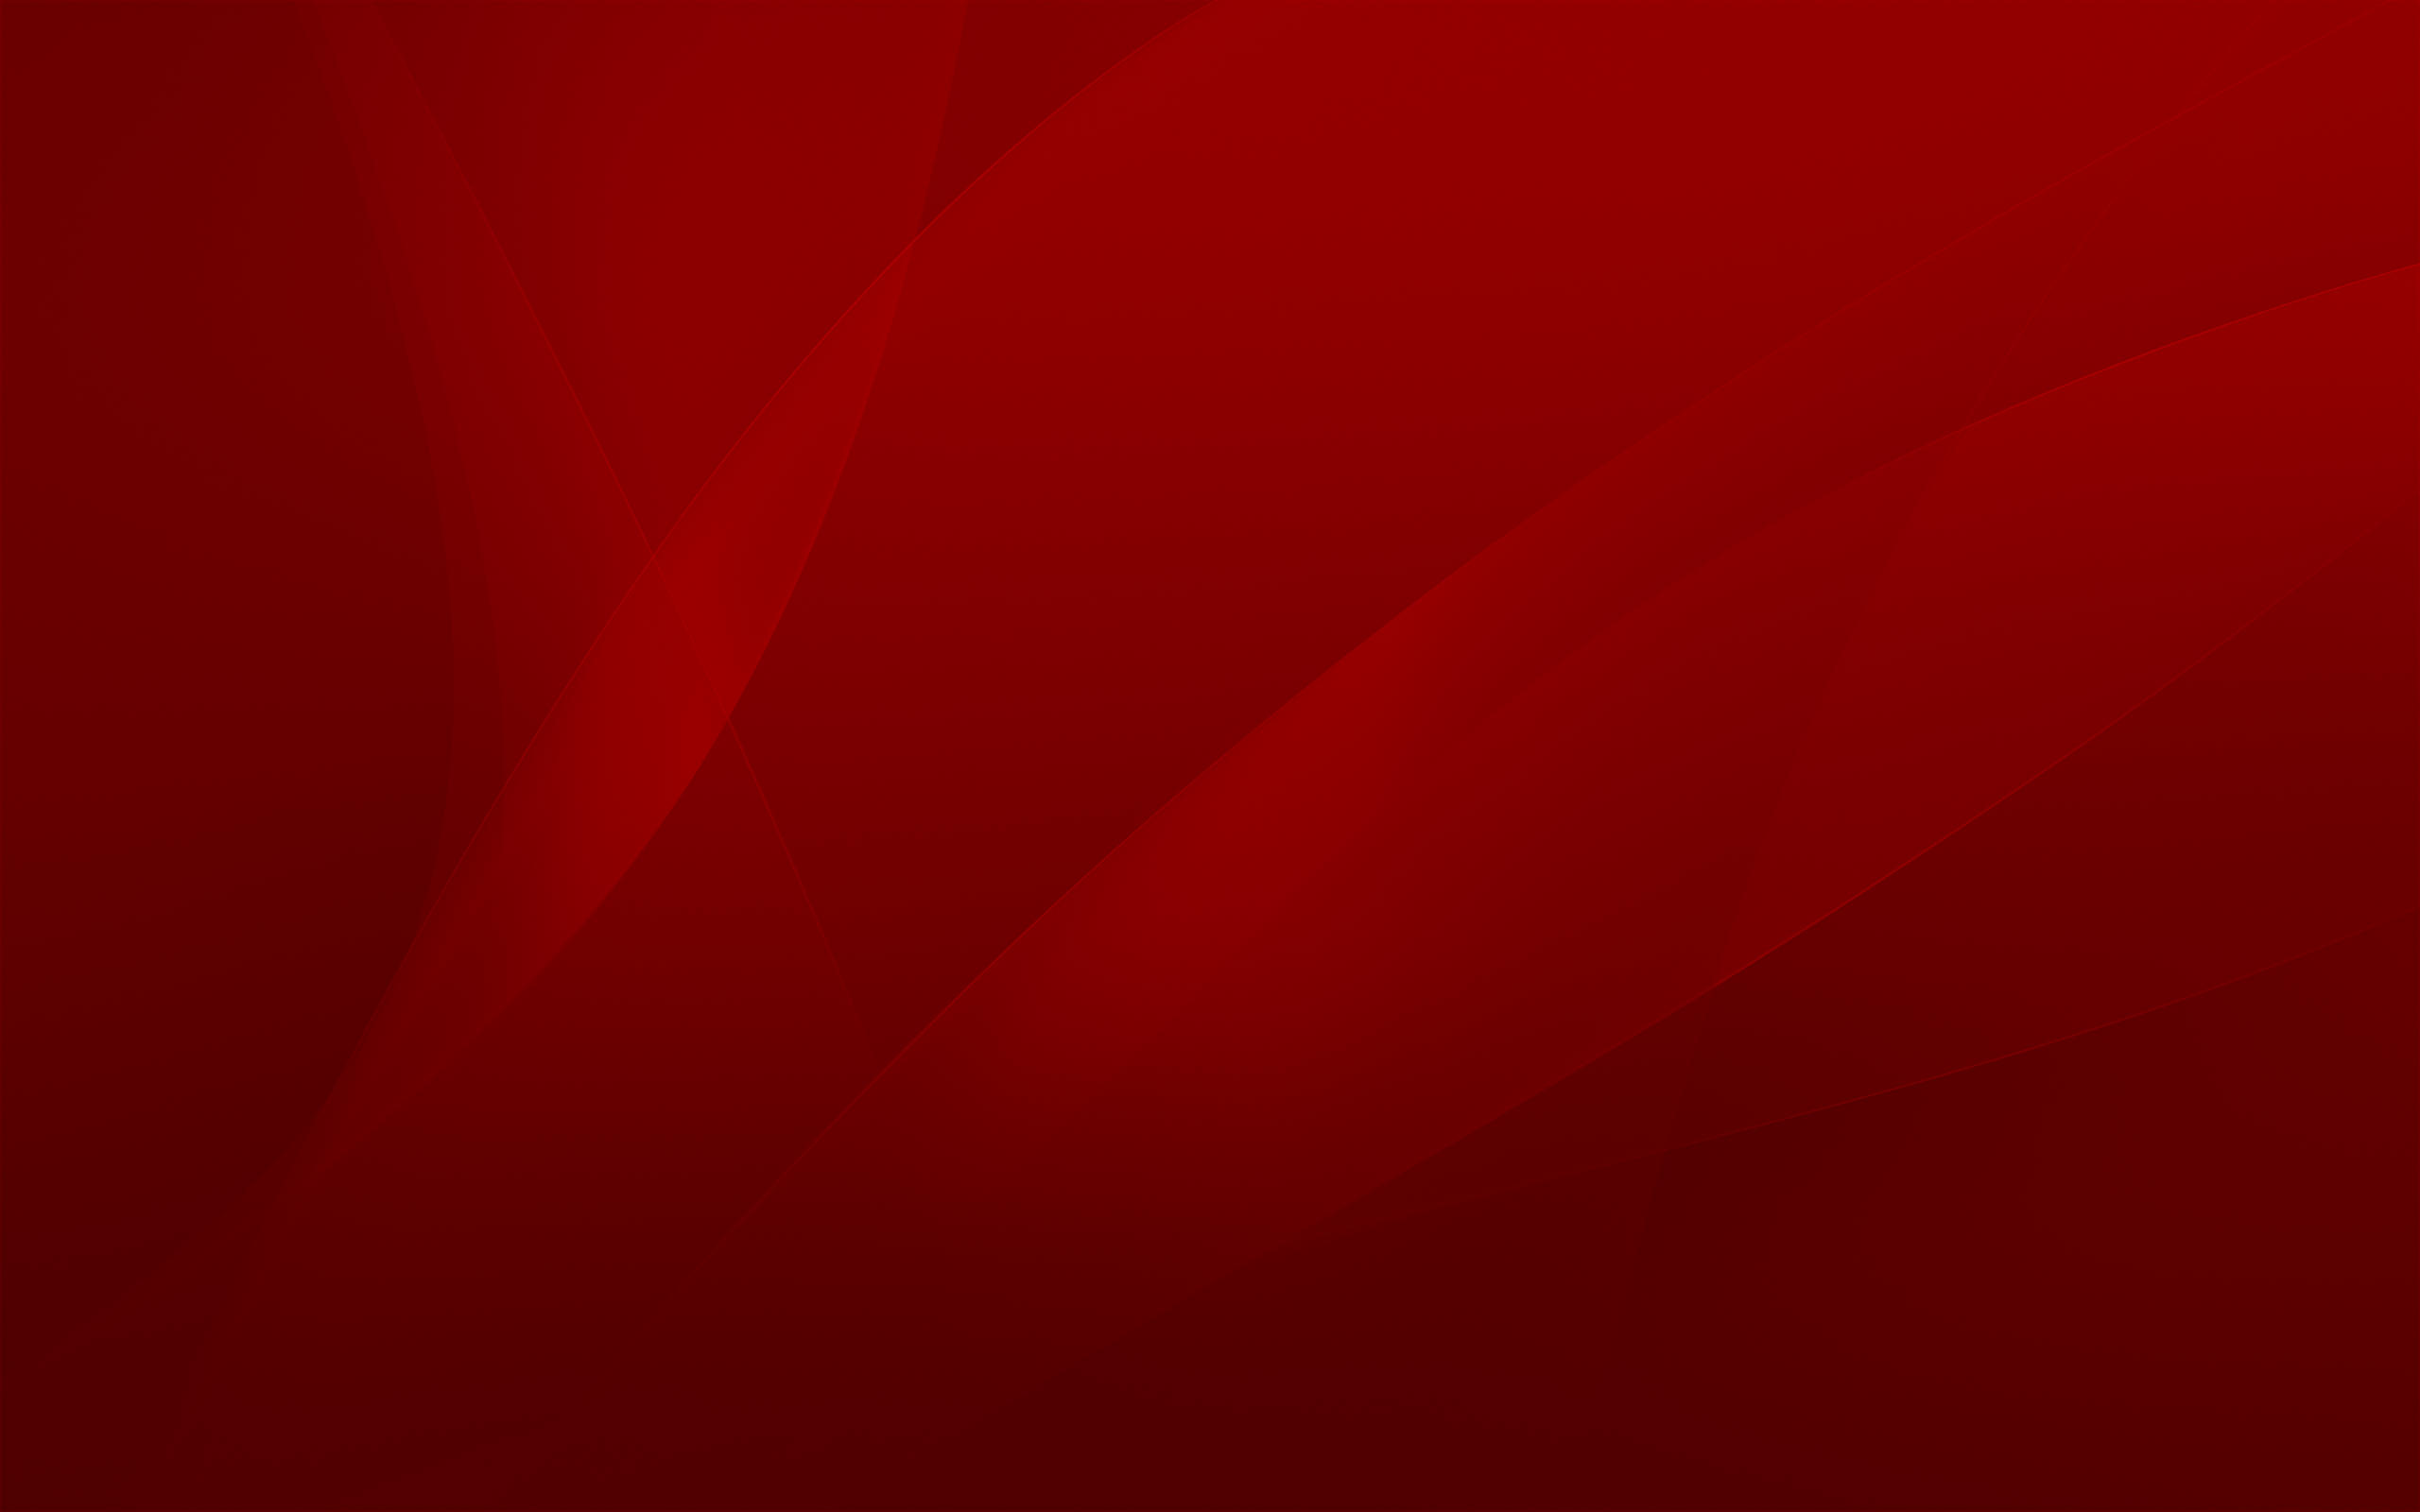 Best Wallpapers For Iphone X 4k Red Colour Www Pixshark Com Images Galleries With A Bite